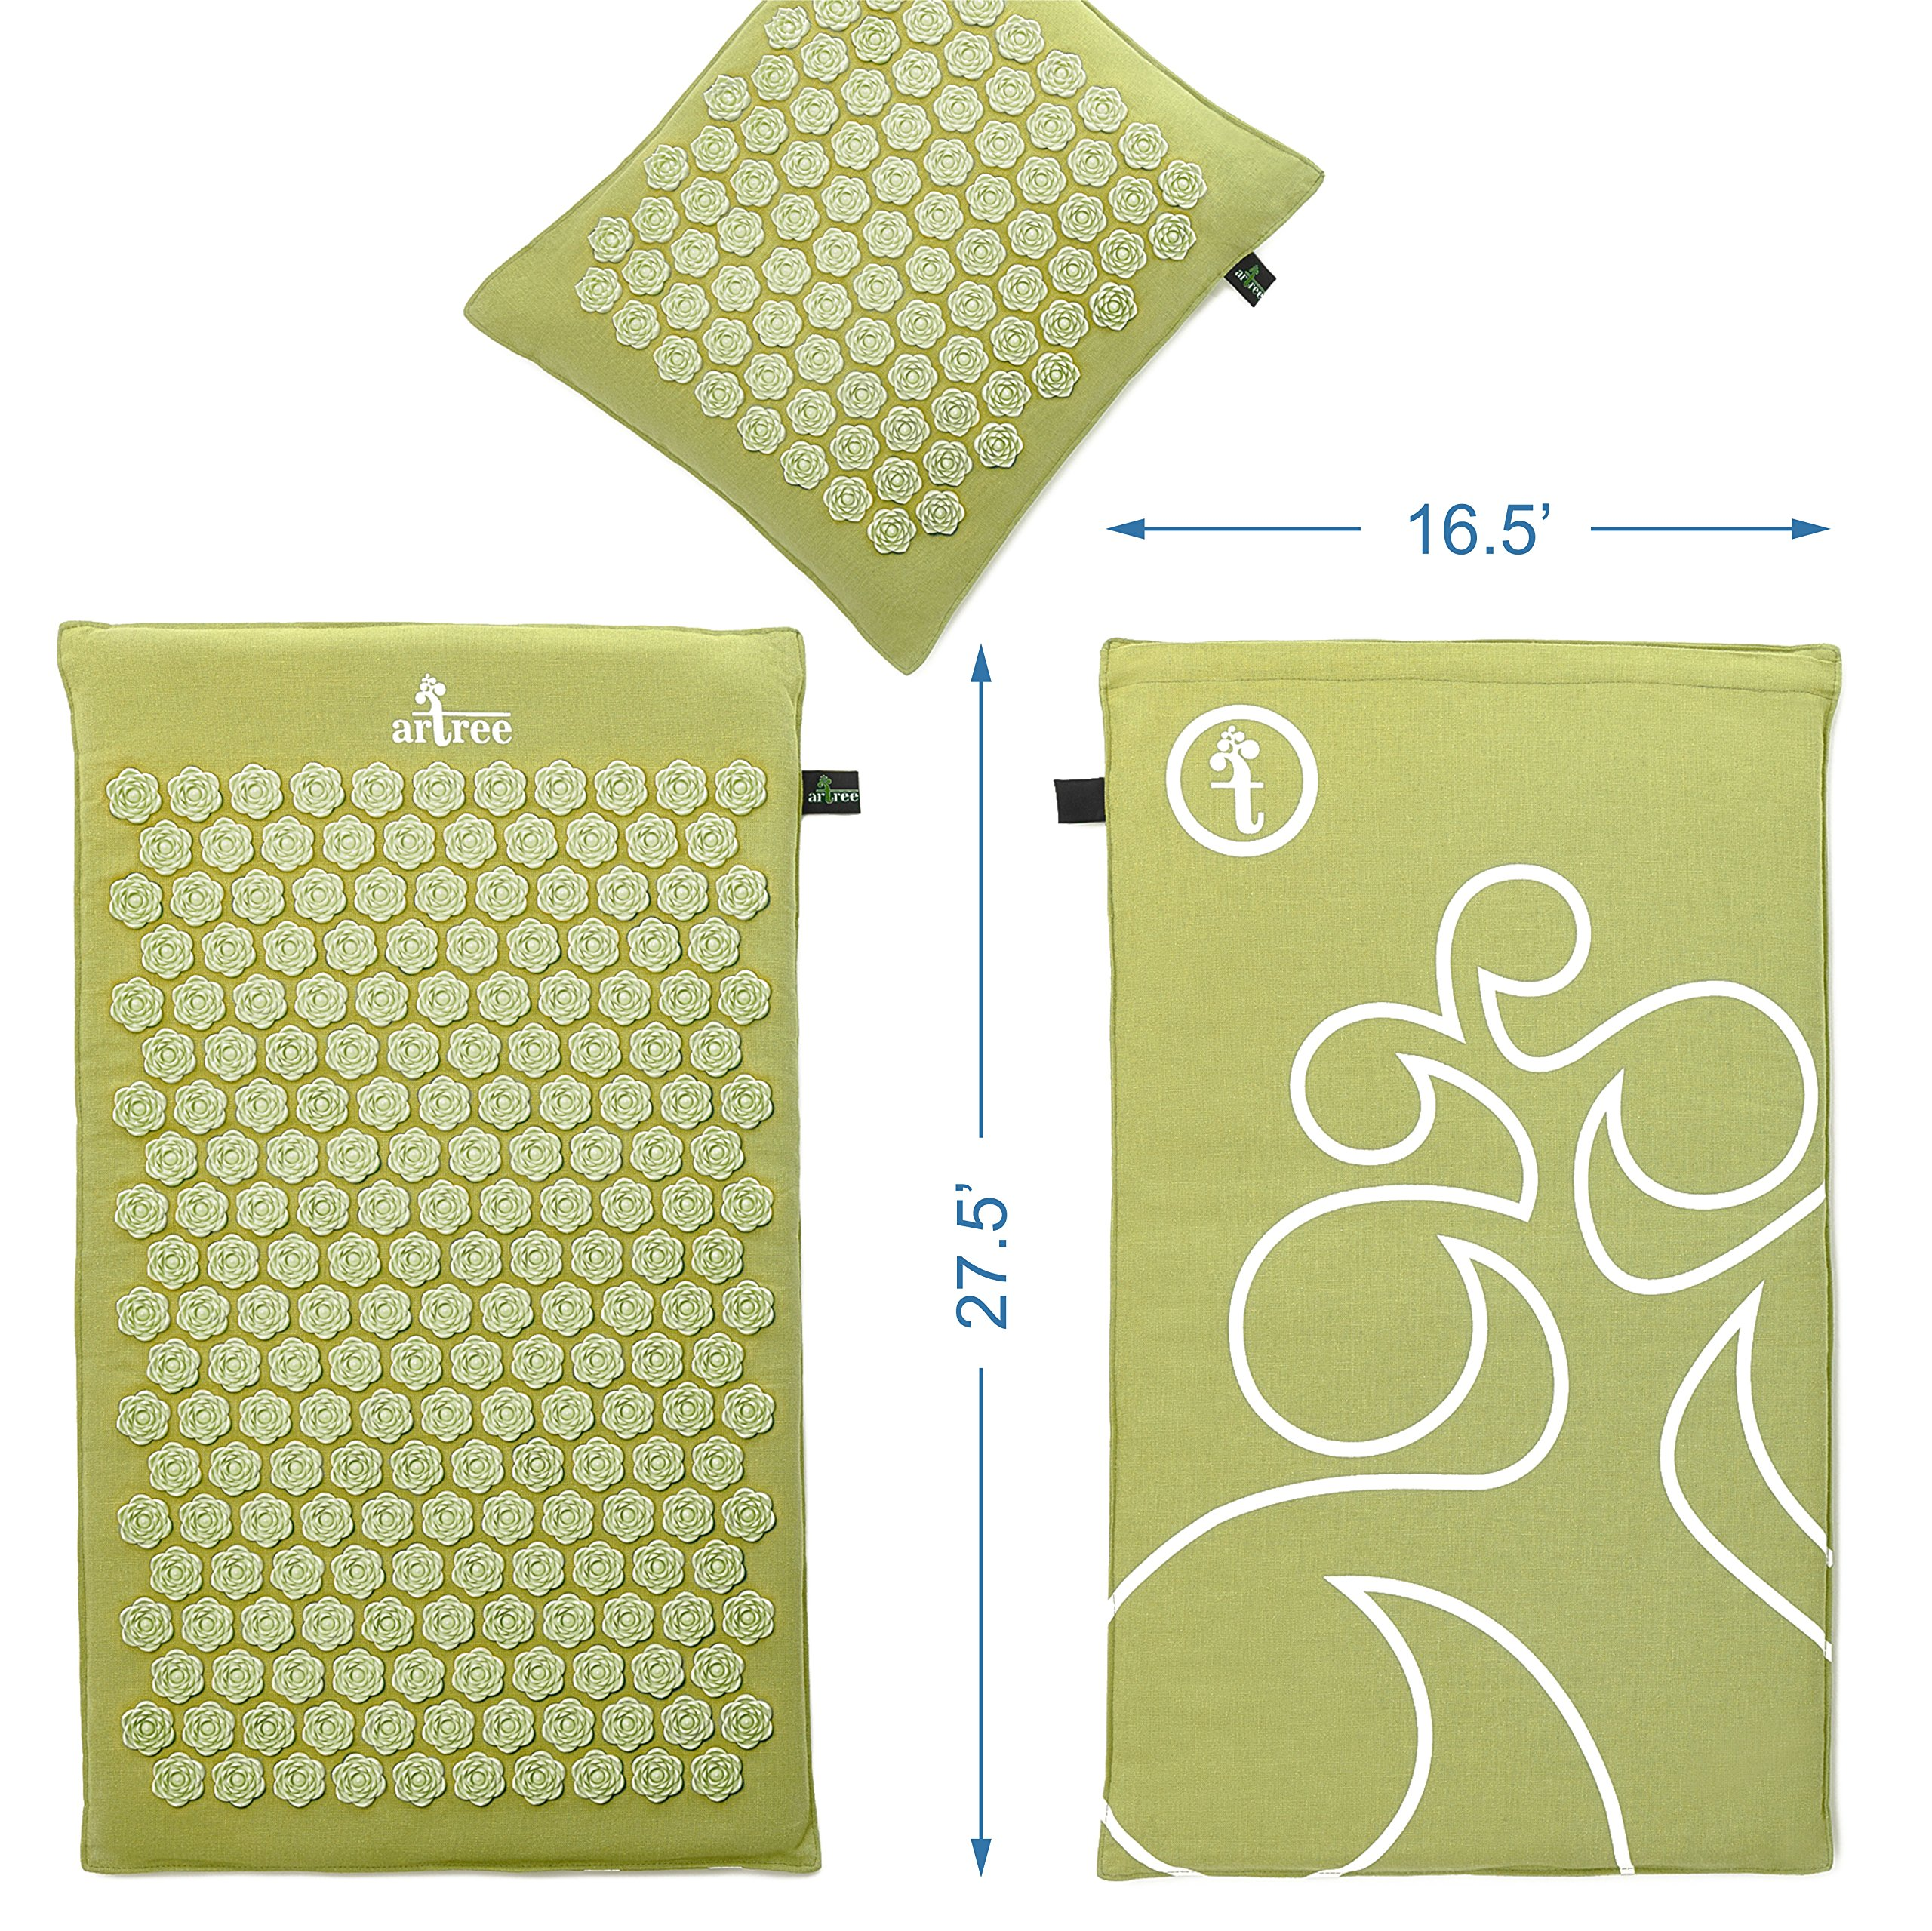 New Version Professional Acupressure Mat and Pillow Set Natural Linen – Best Acupuncture Mat Gift – Back and Neck Pain Relief Reflexology Mat – for Women and Men - Stress and Muscle Relief (Green) by Artree (Image #2)